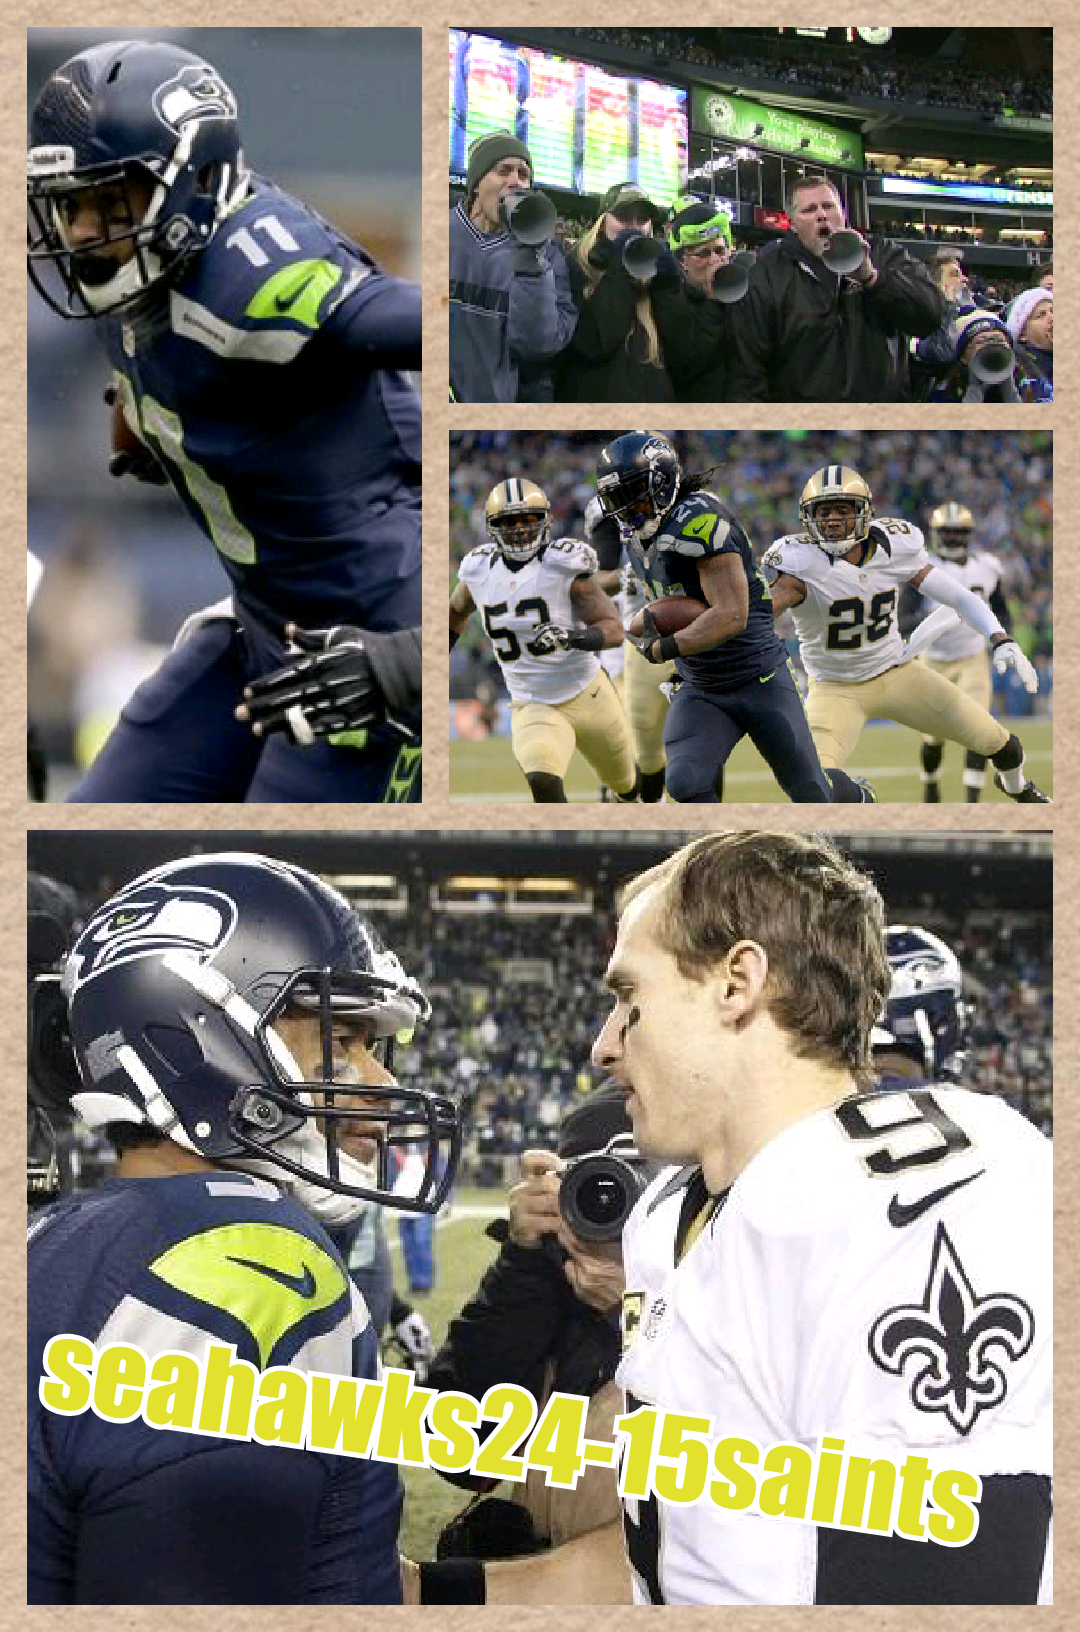 seahawks vs saints